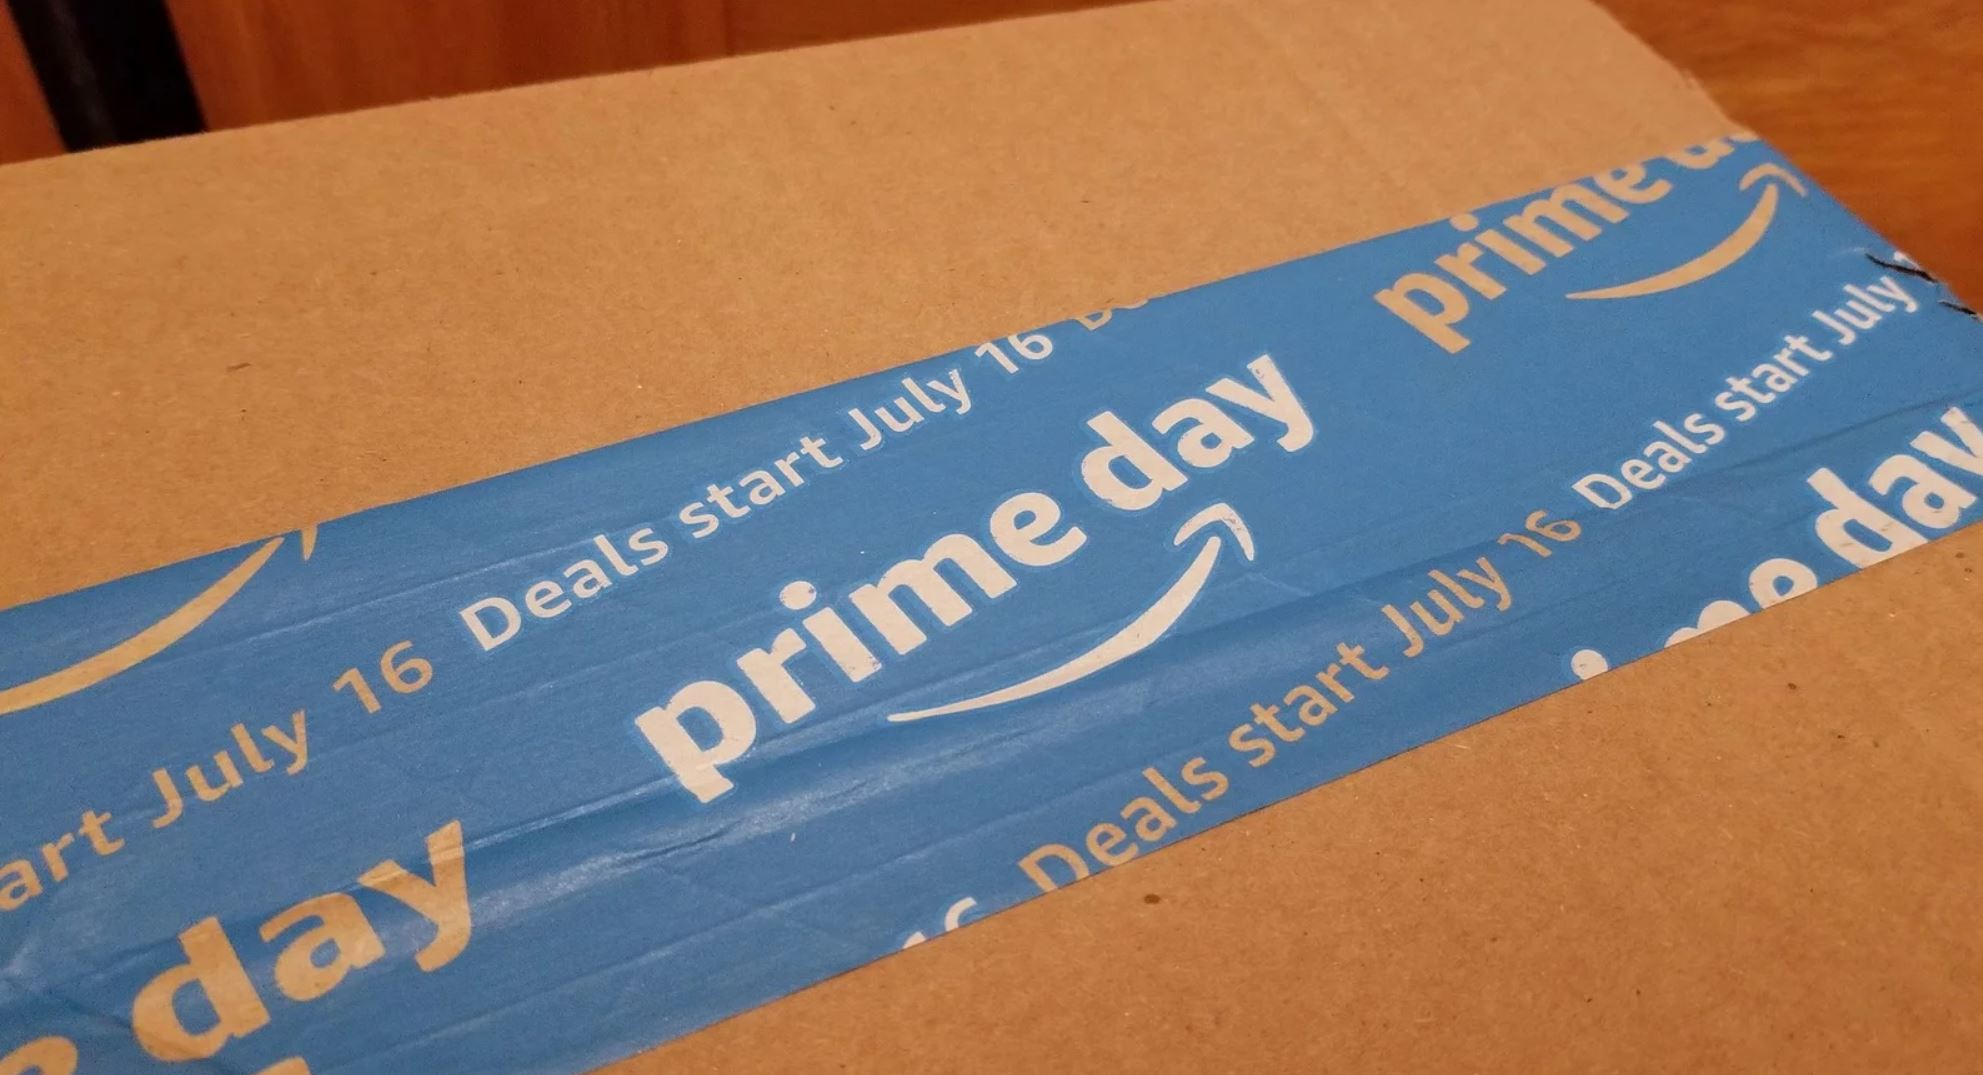 Amazon Prime Day sales soar despite glitches